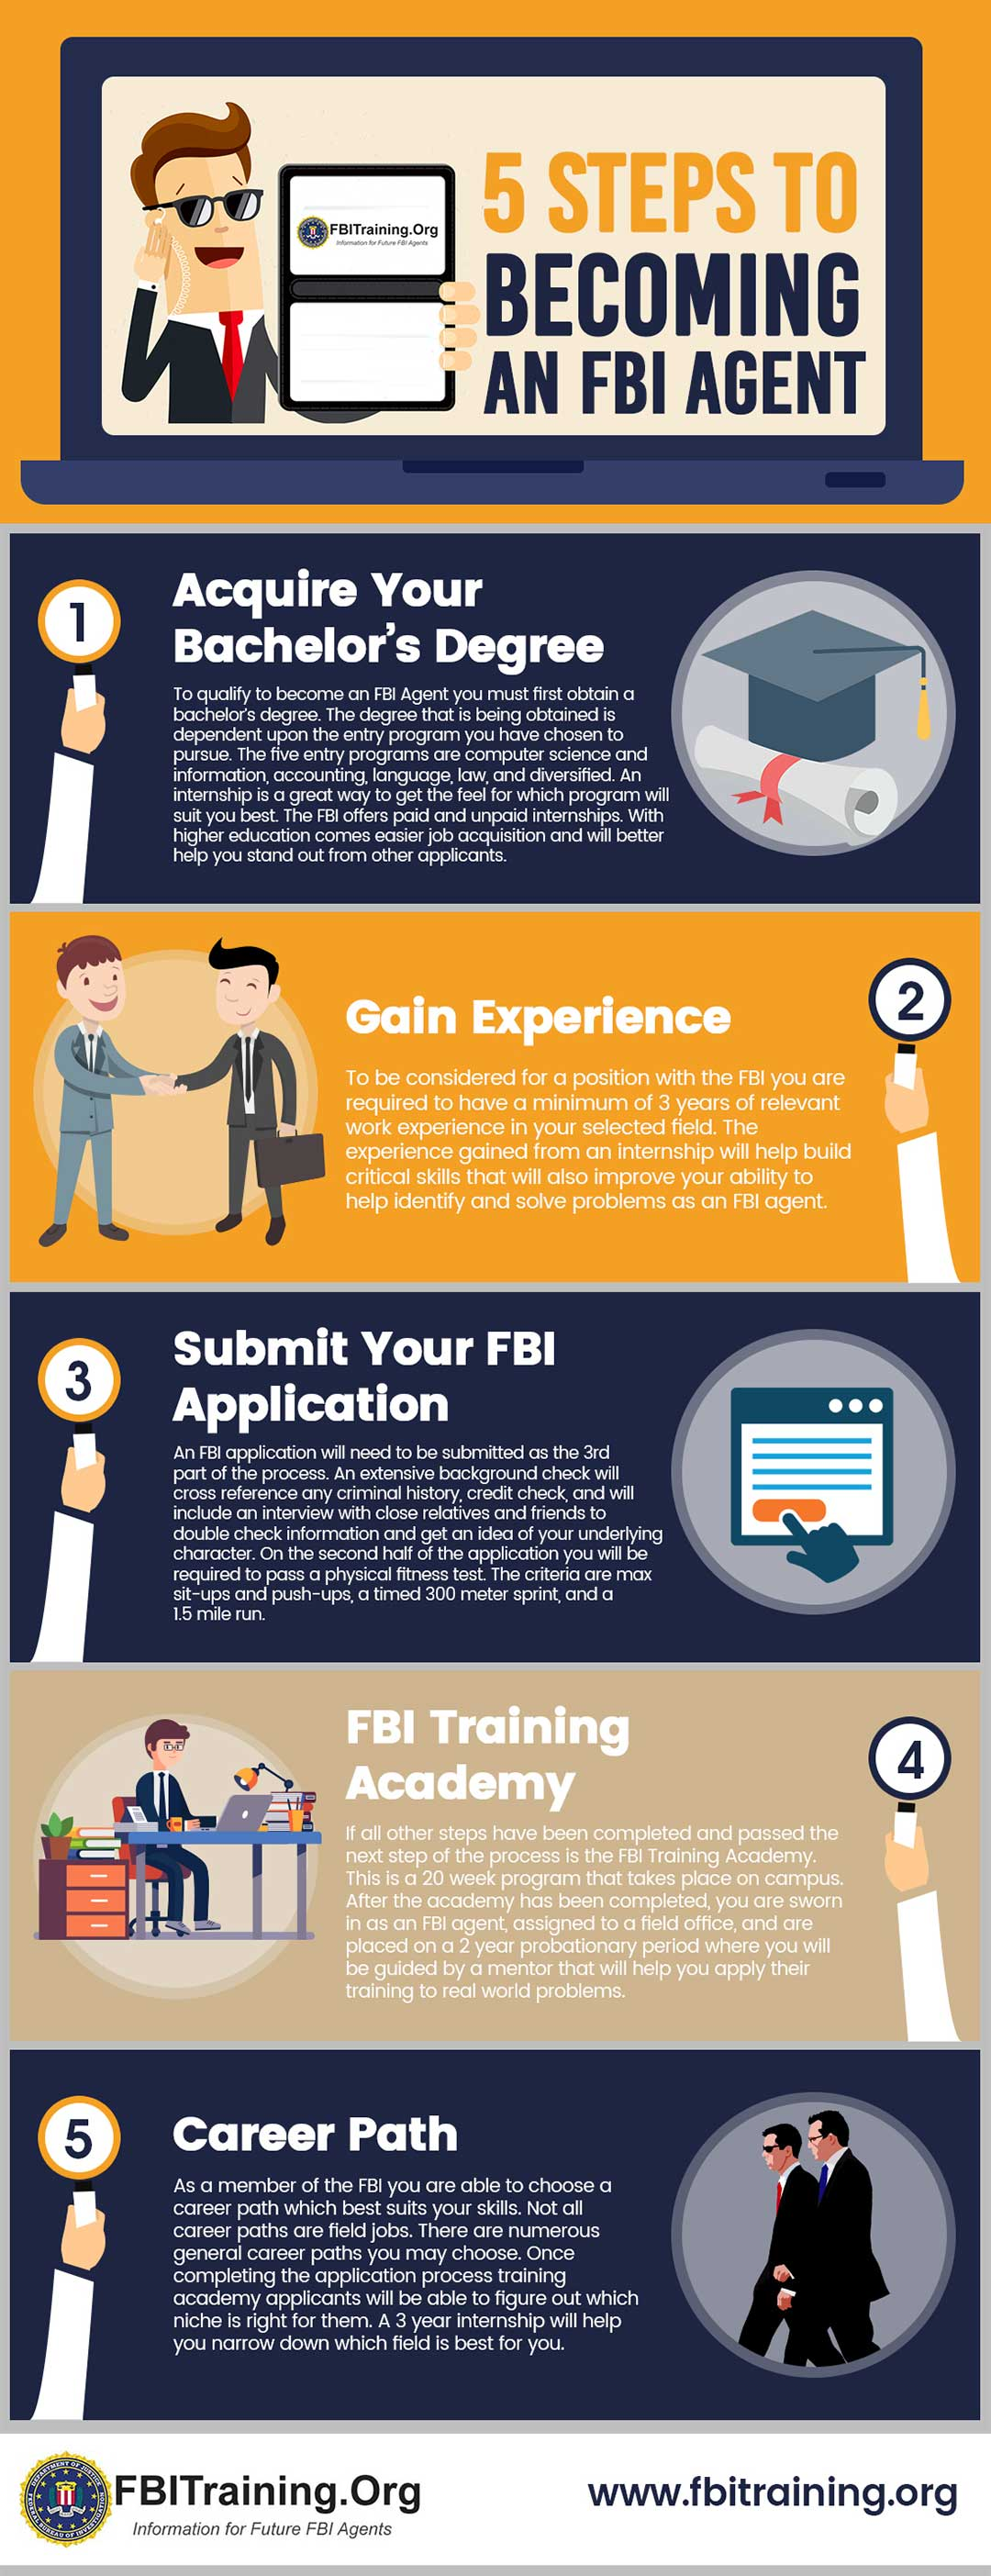 5 Steps to Becoming an FBI Agent